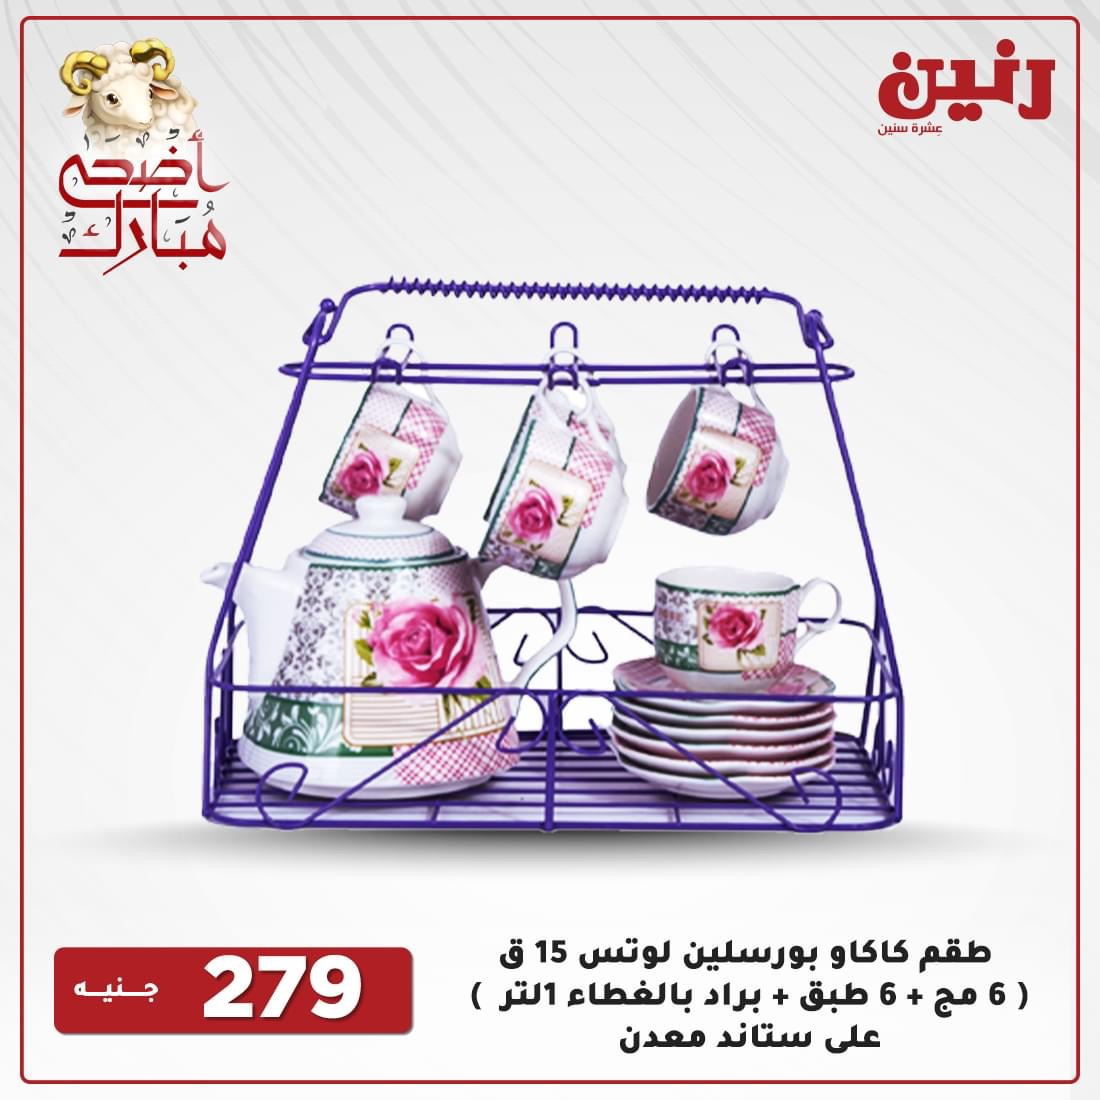 Raneen offers today for appliances and household appliances from July 22 to 24, 2021 13